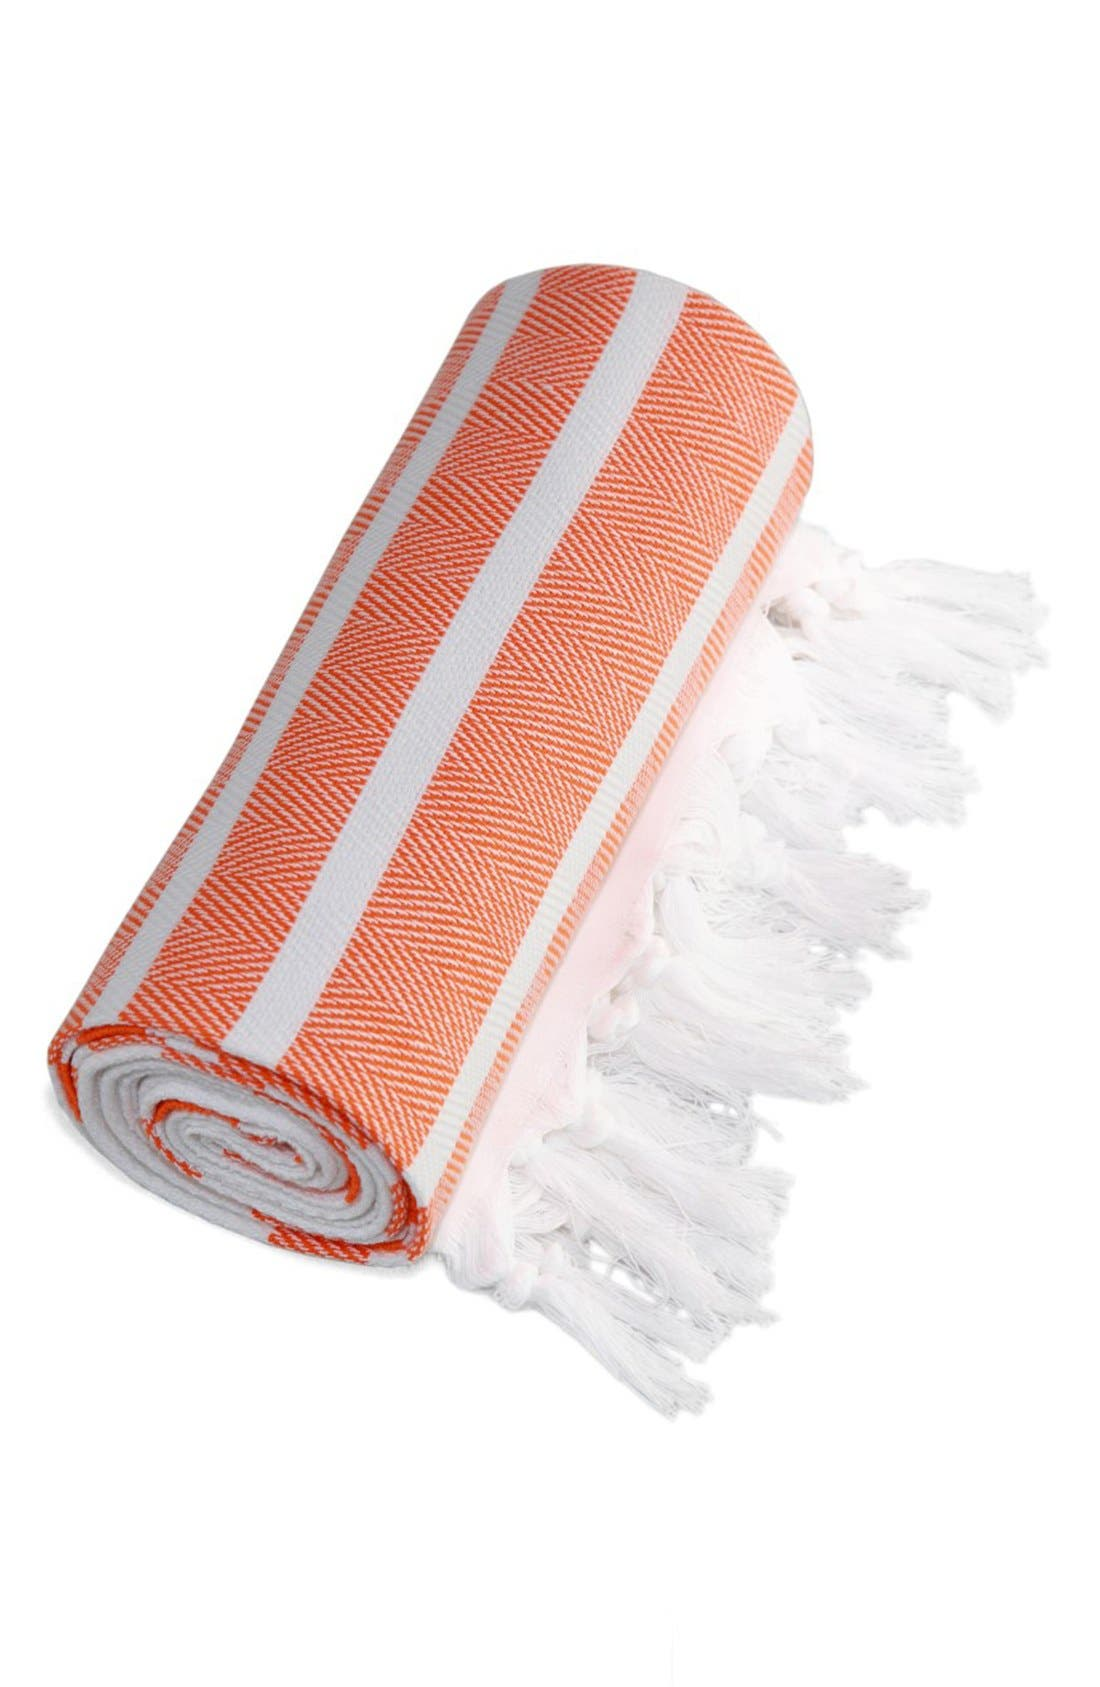 Alternate Image 3  - Linum Home Textiles Herringbone Striped Turkish Pestemal Towel